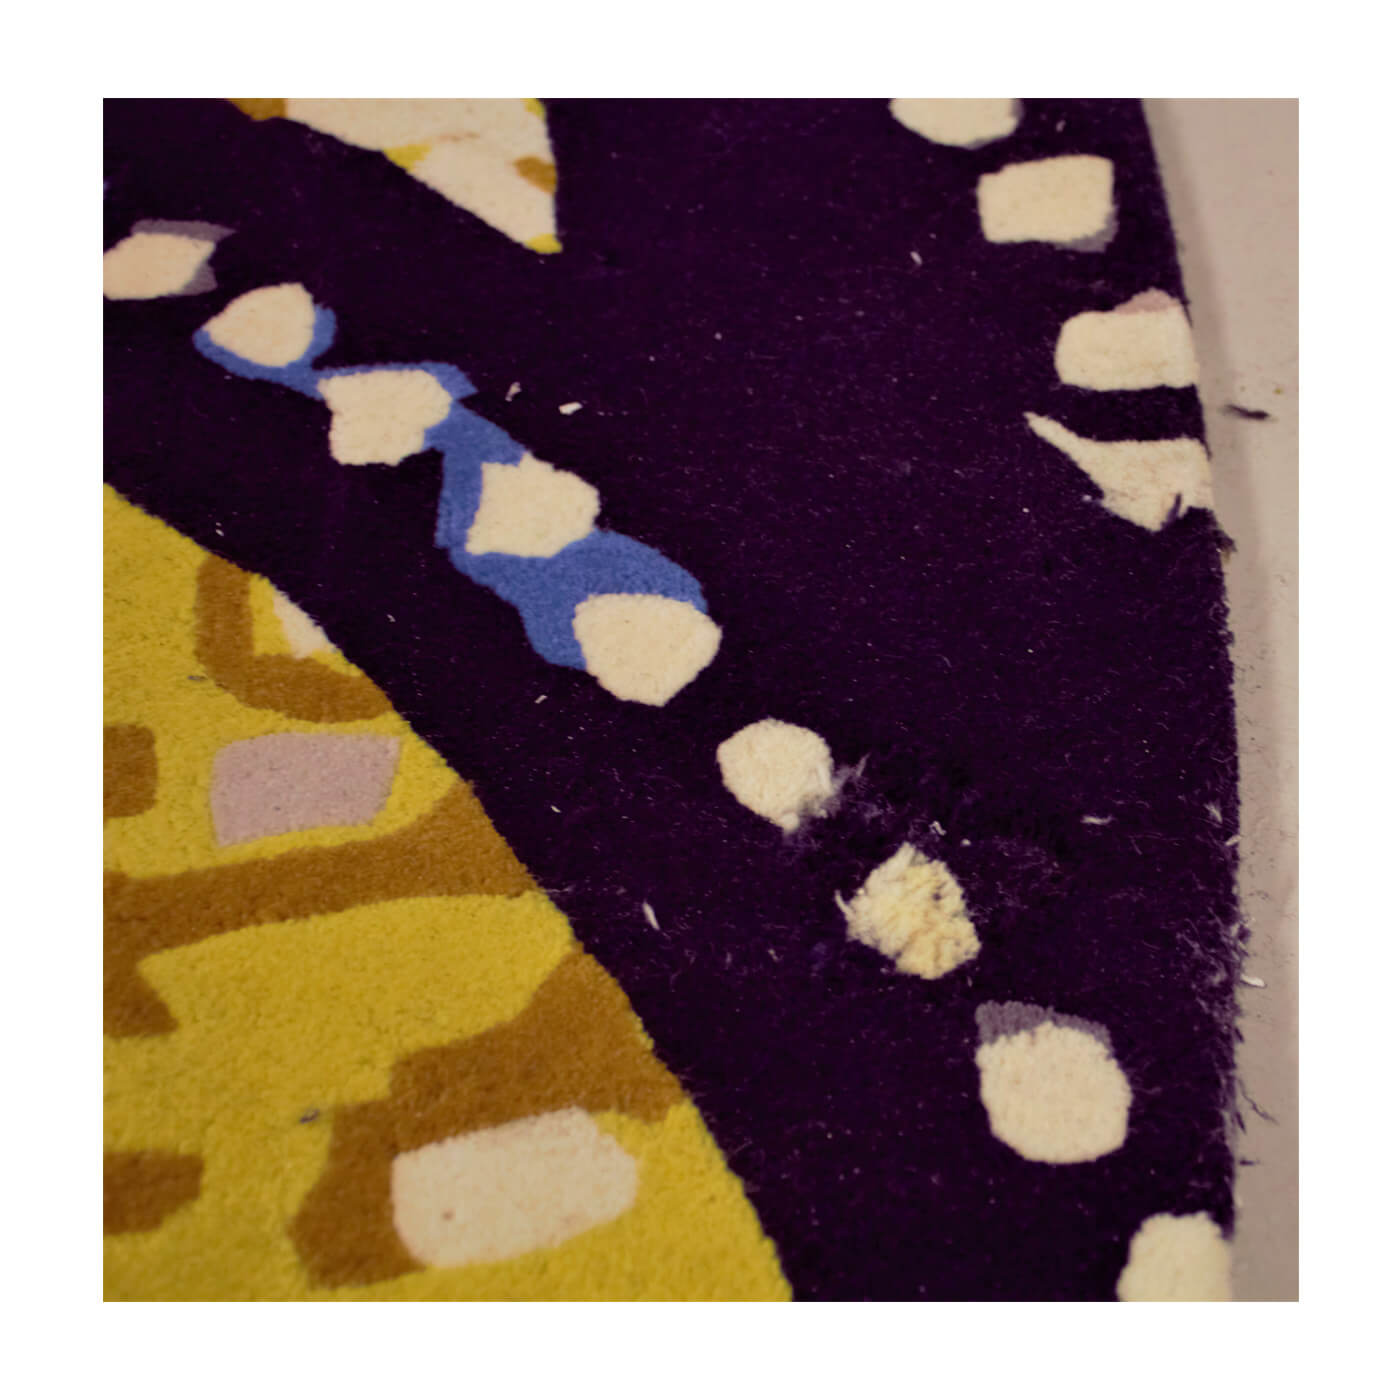 Designer Rugs Eastone Pearson Wishing Well round rug 3.5m in blue and yellow